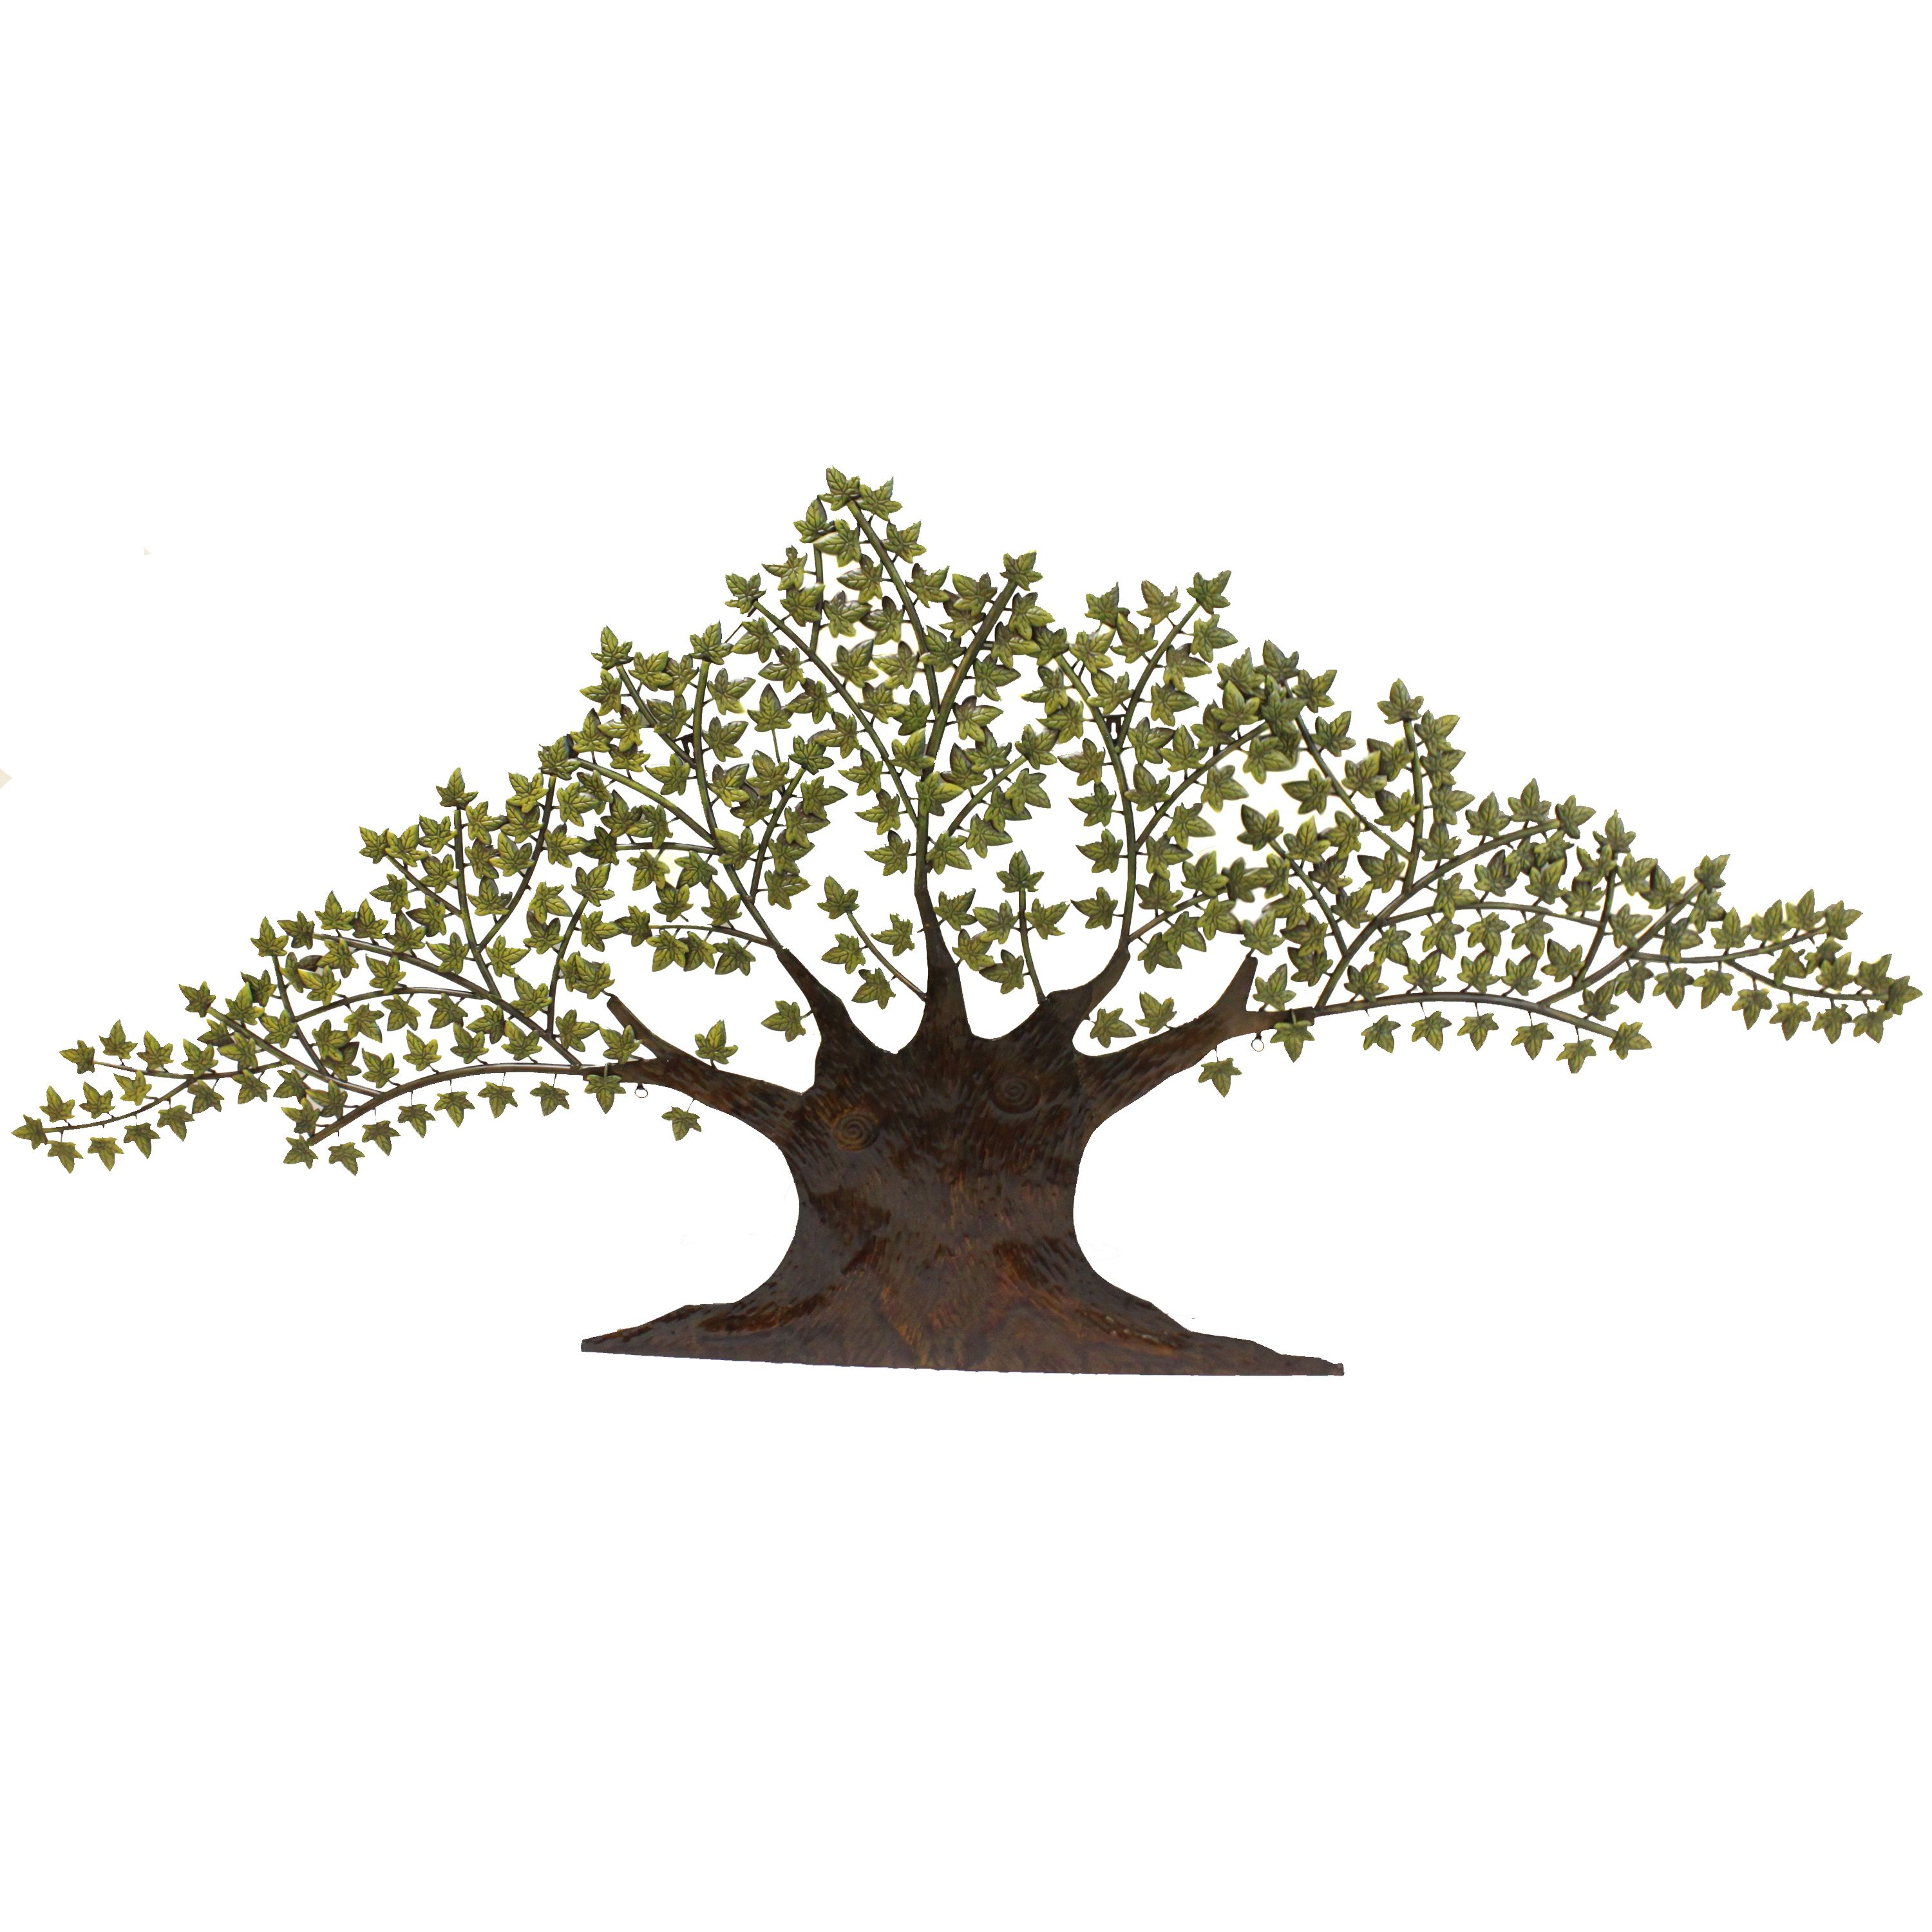 Create peace within your home decor with the symbolic tree of